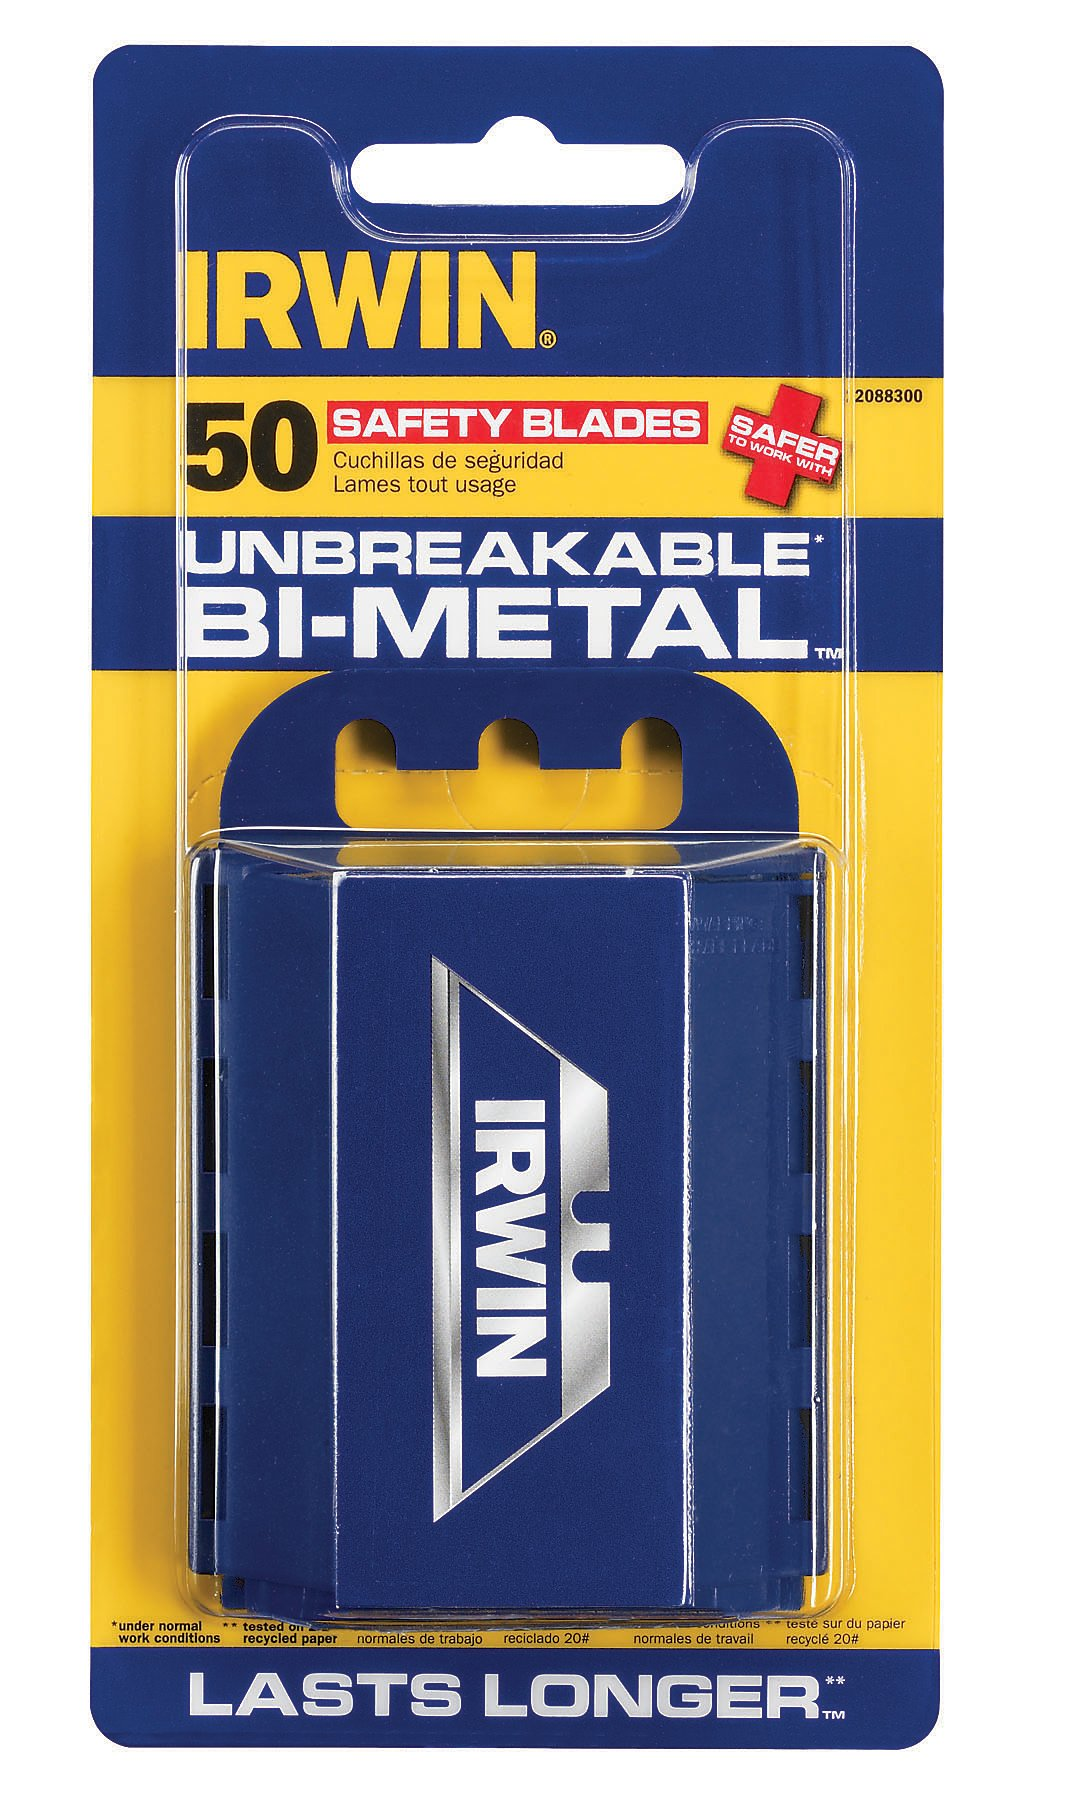 Irwin Tools 1764981 Bulk Safety Blades (100 Pack) by Lenox Tools (Image #1)